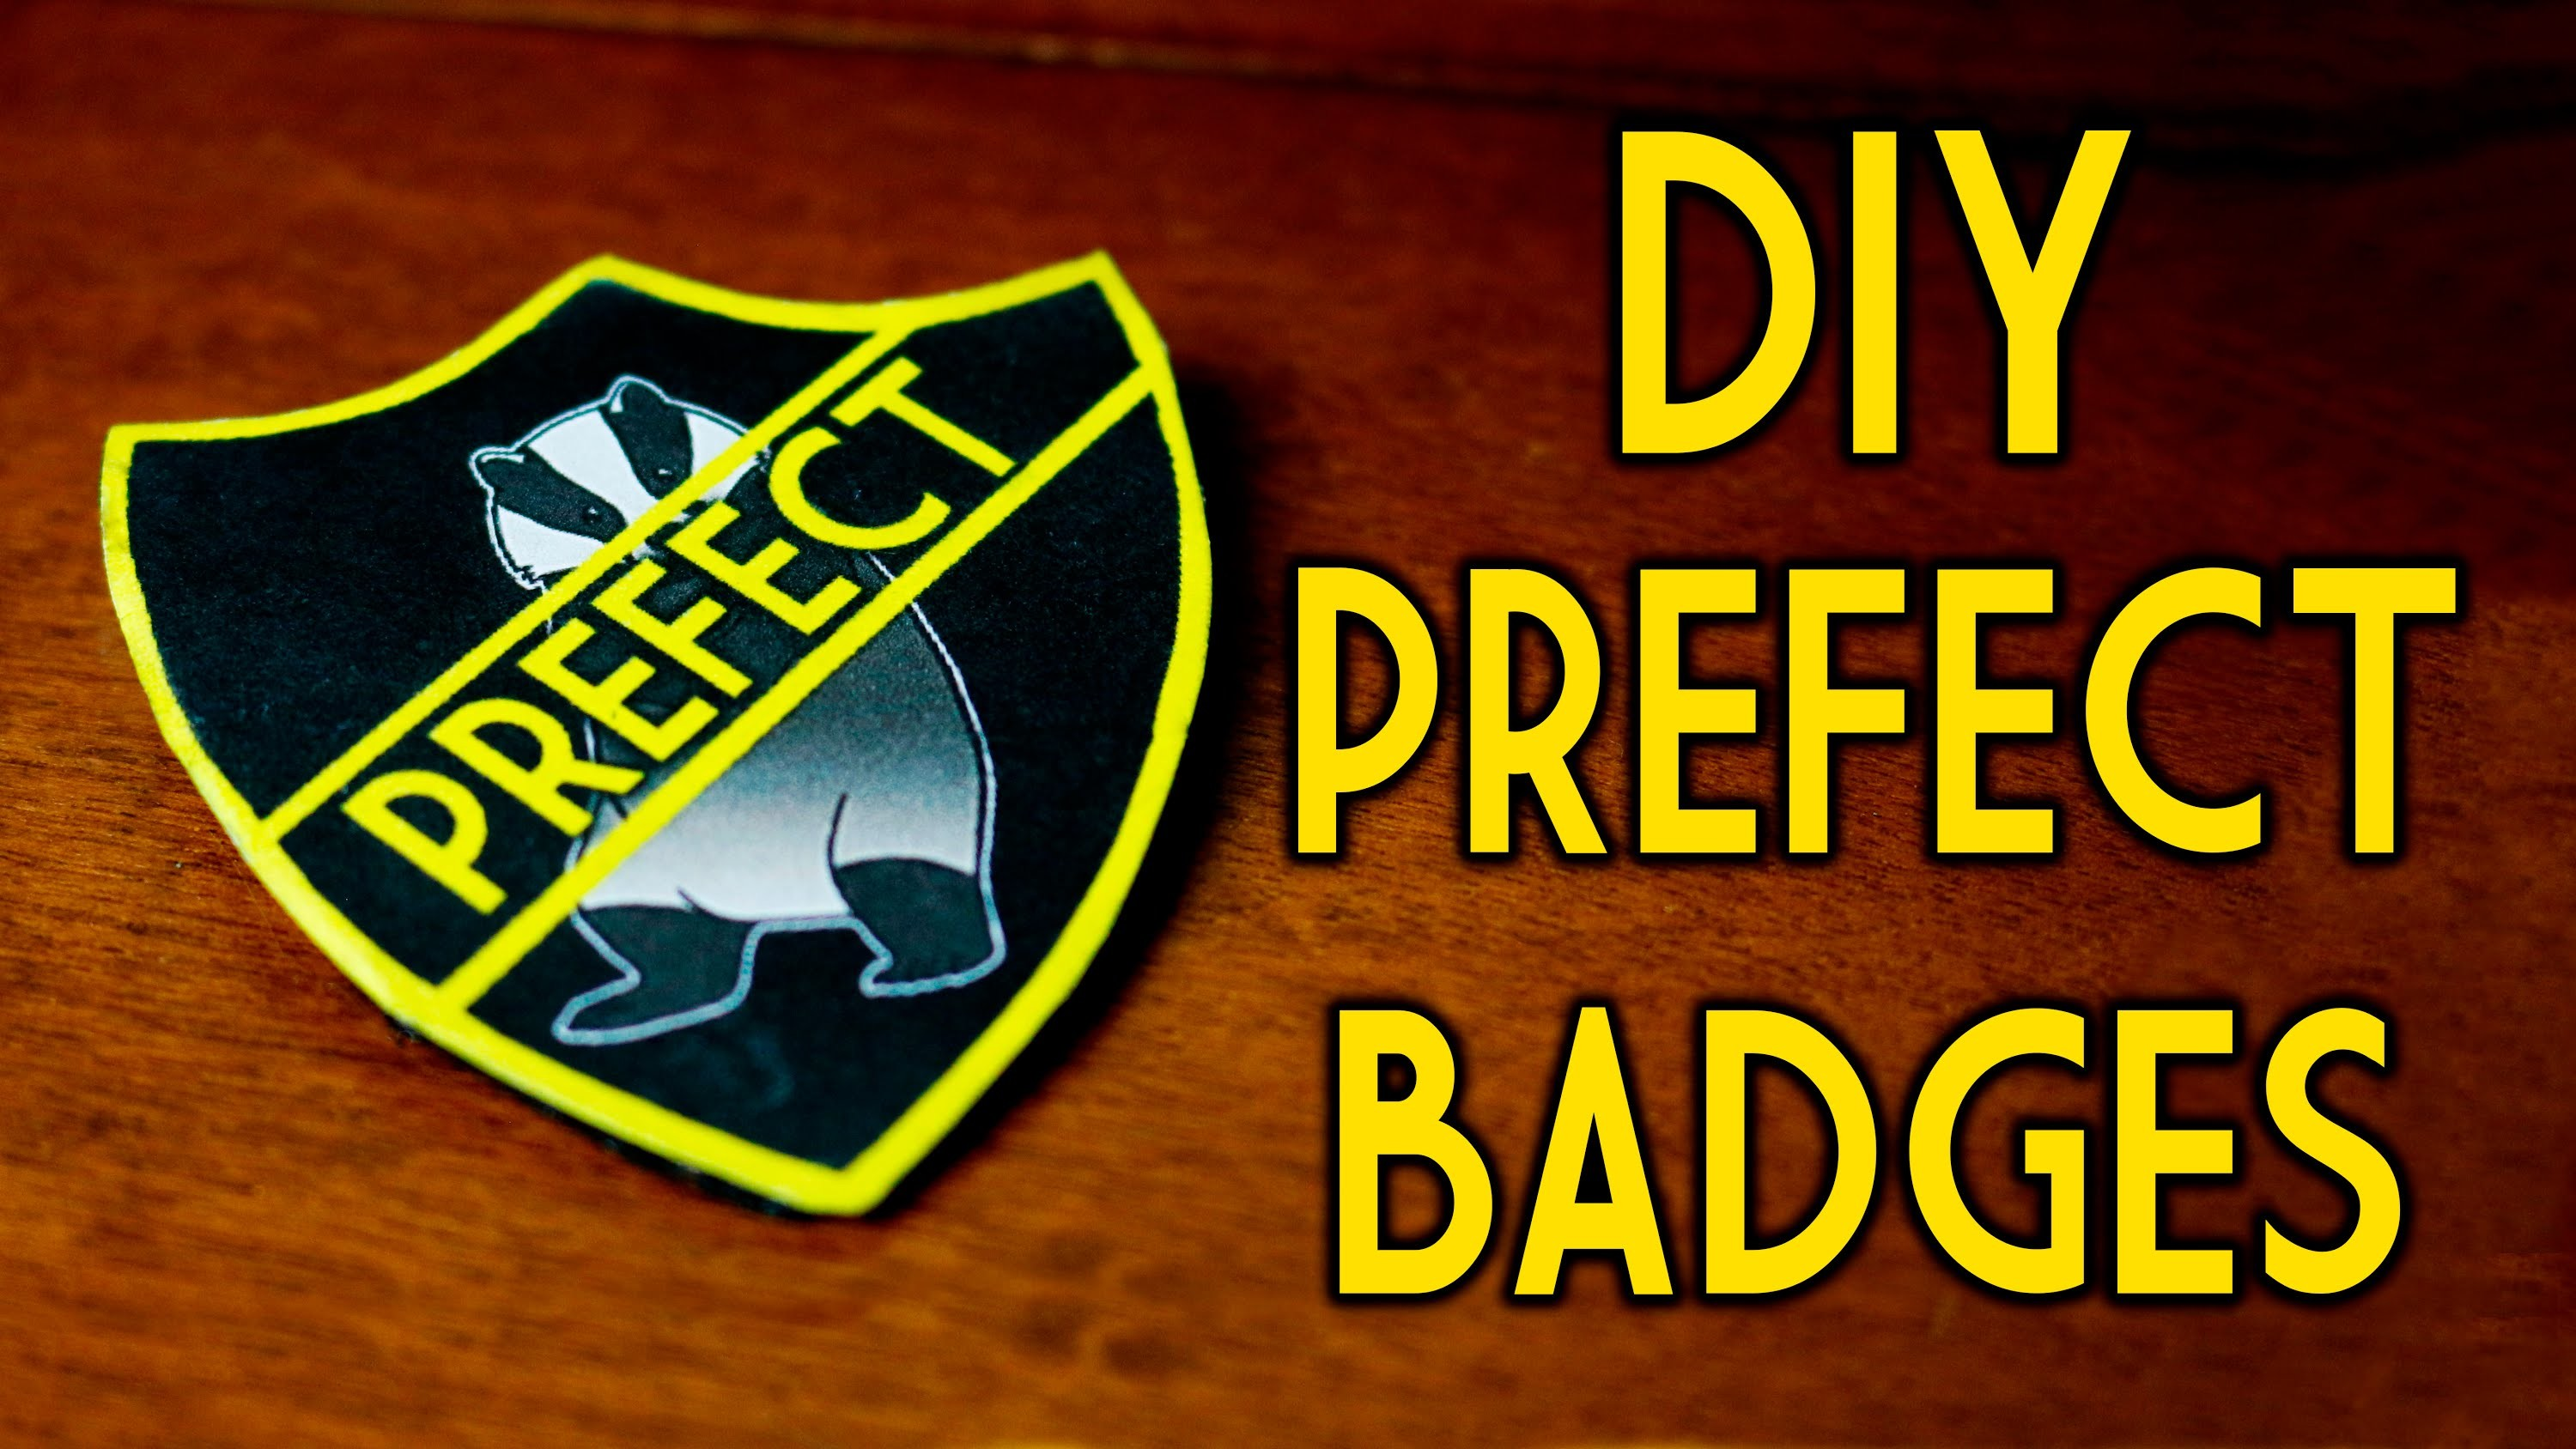 Harry Potter Prefect Badges Diy